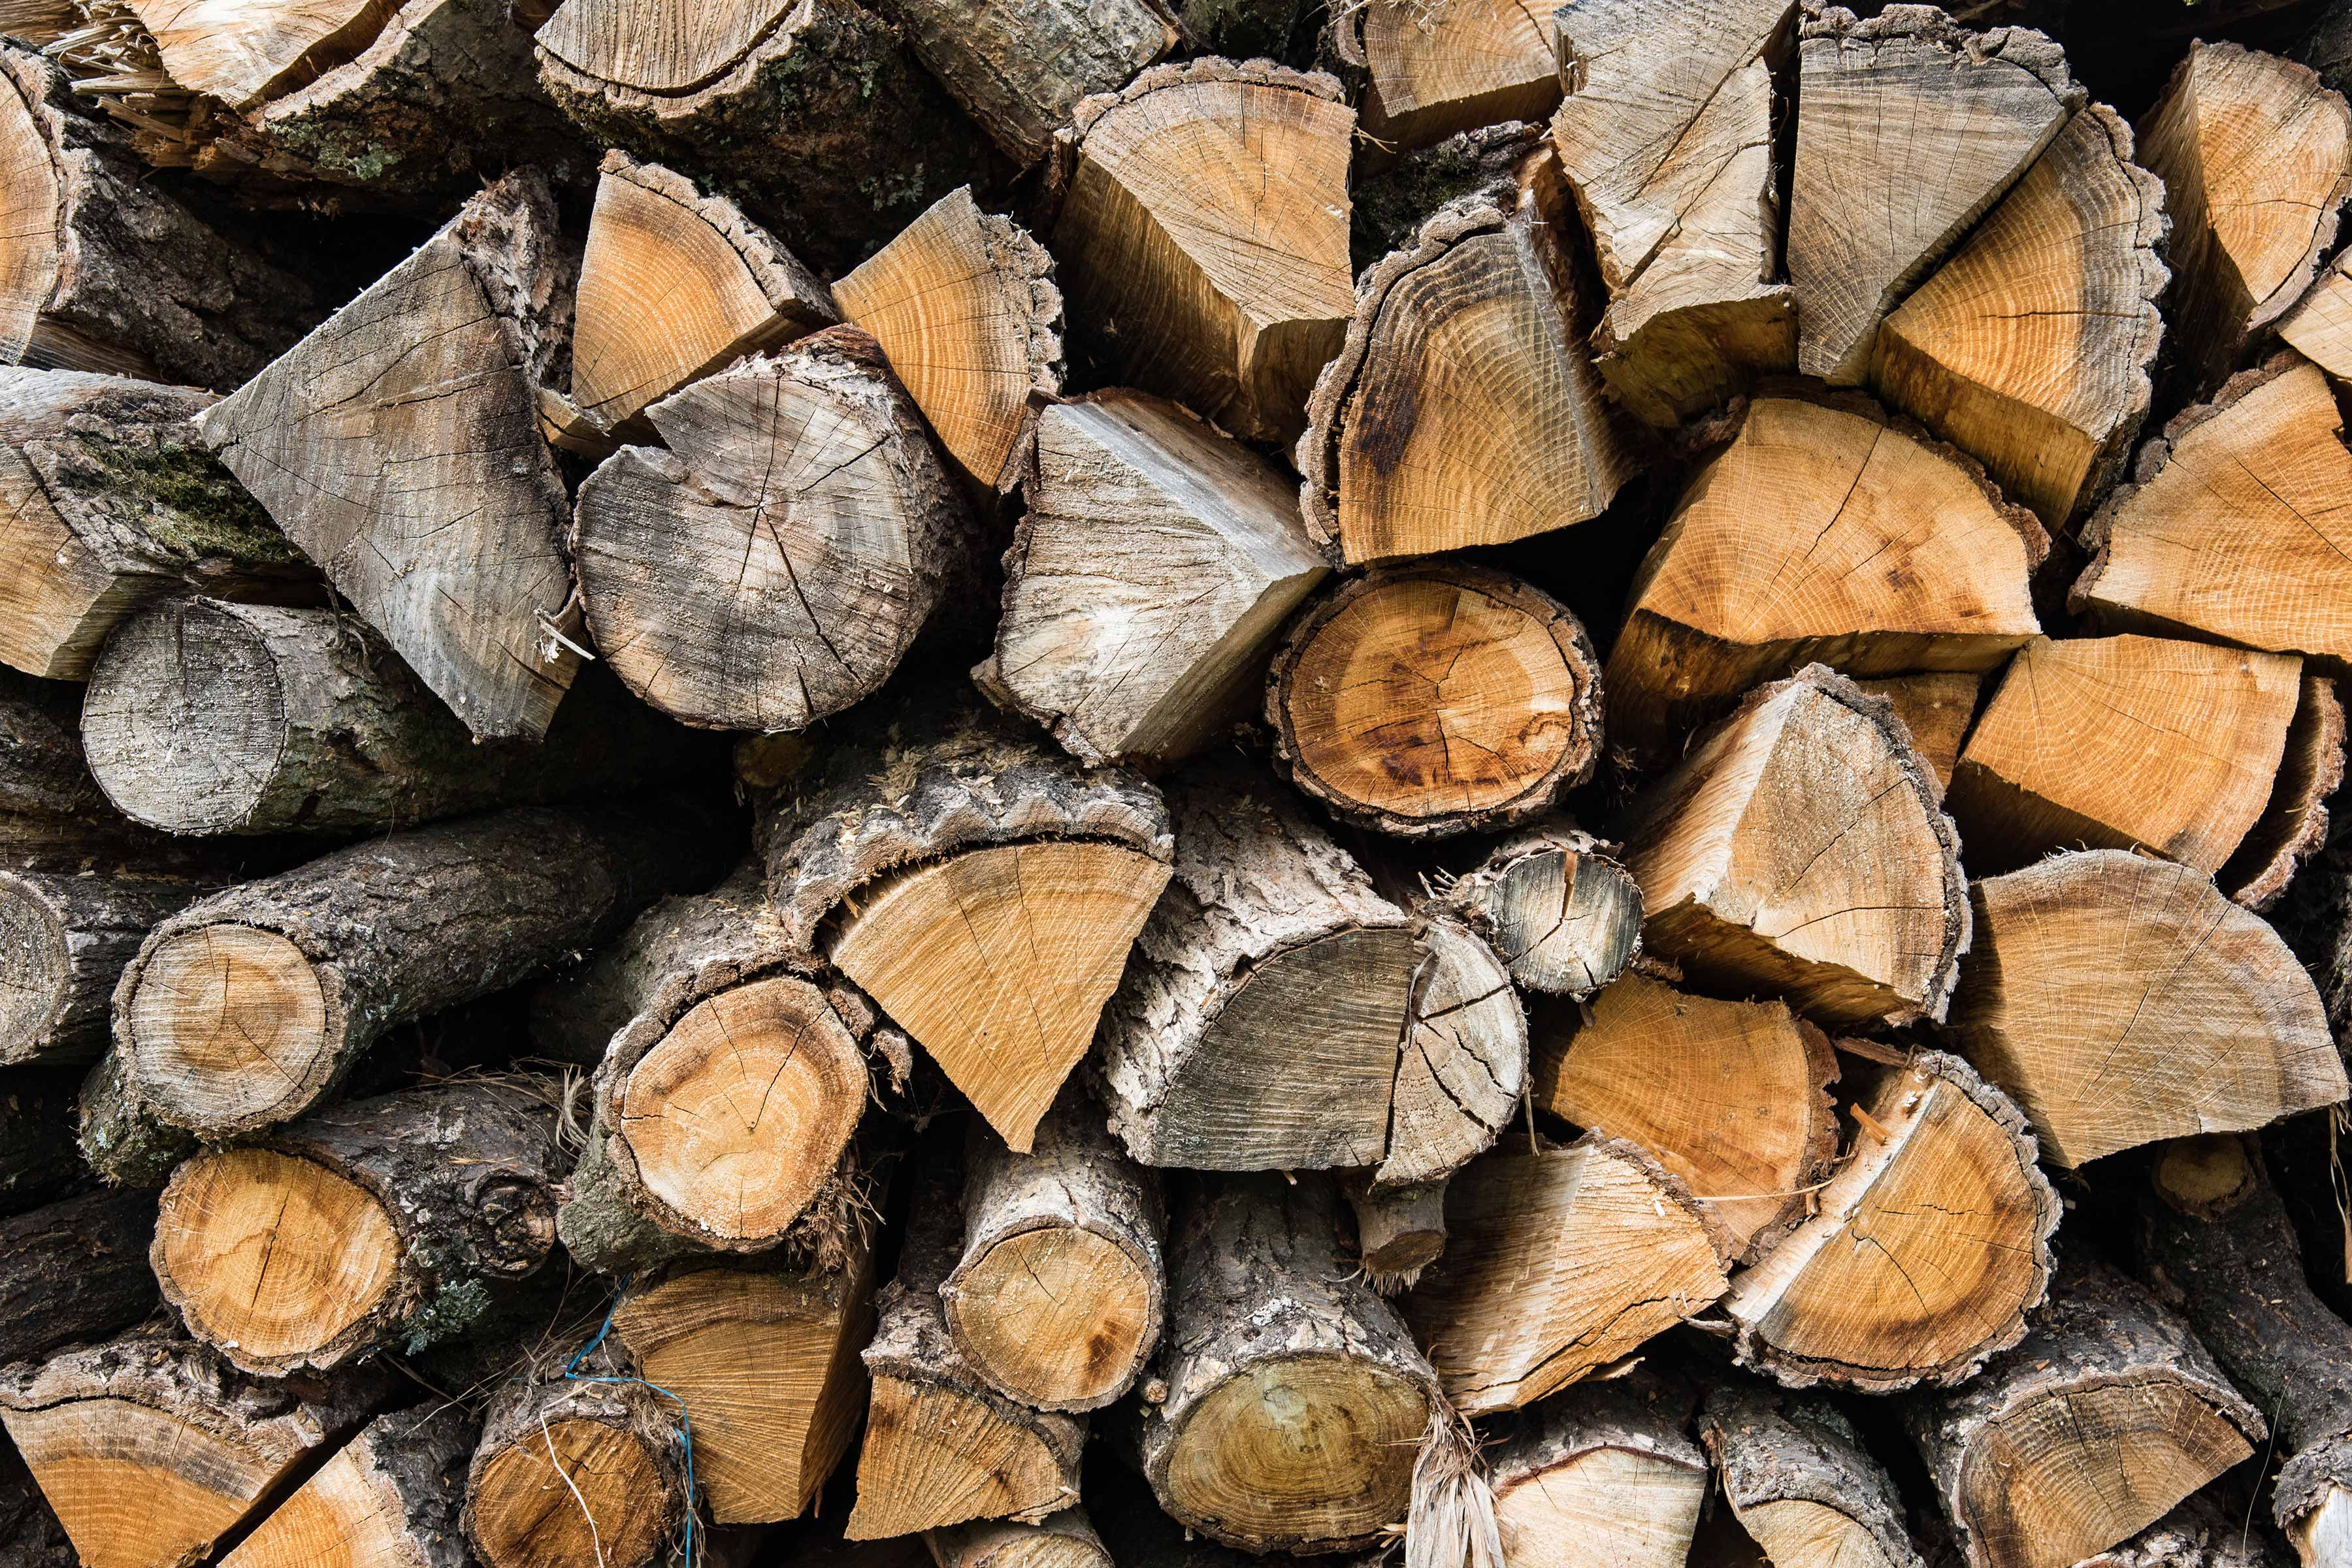 A close up stack of cut wood